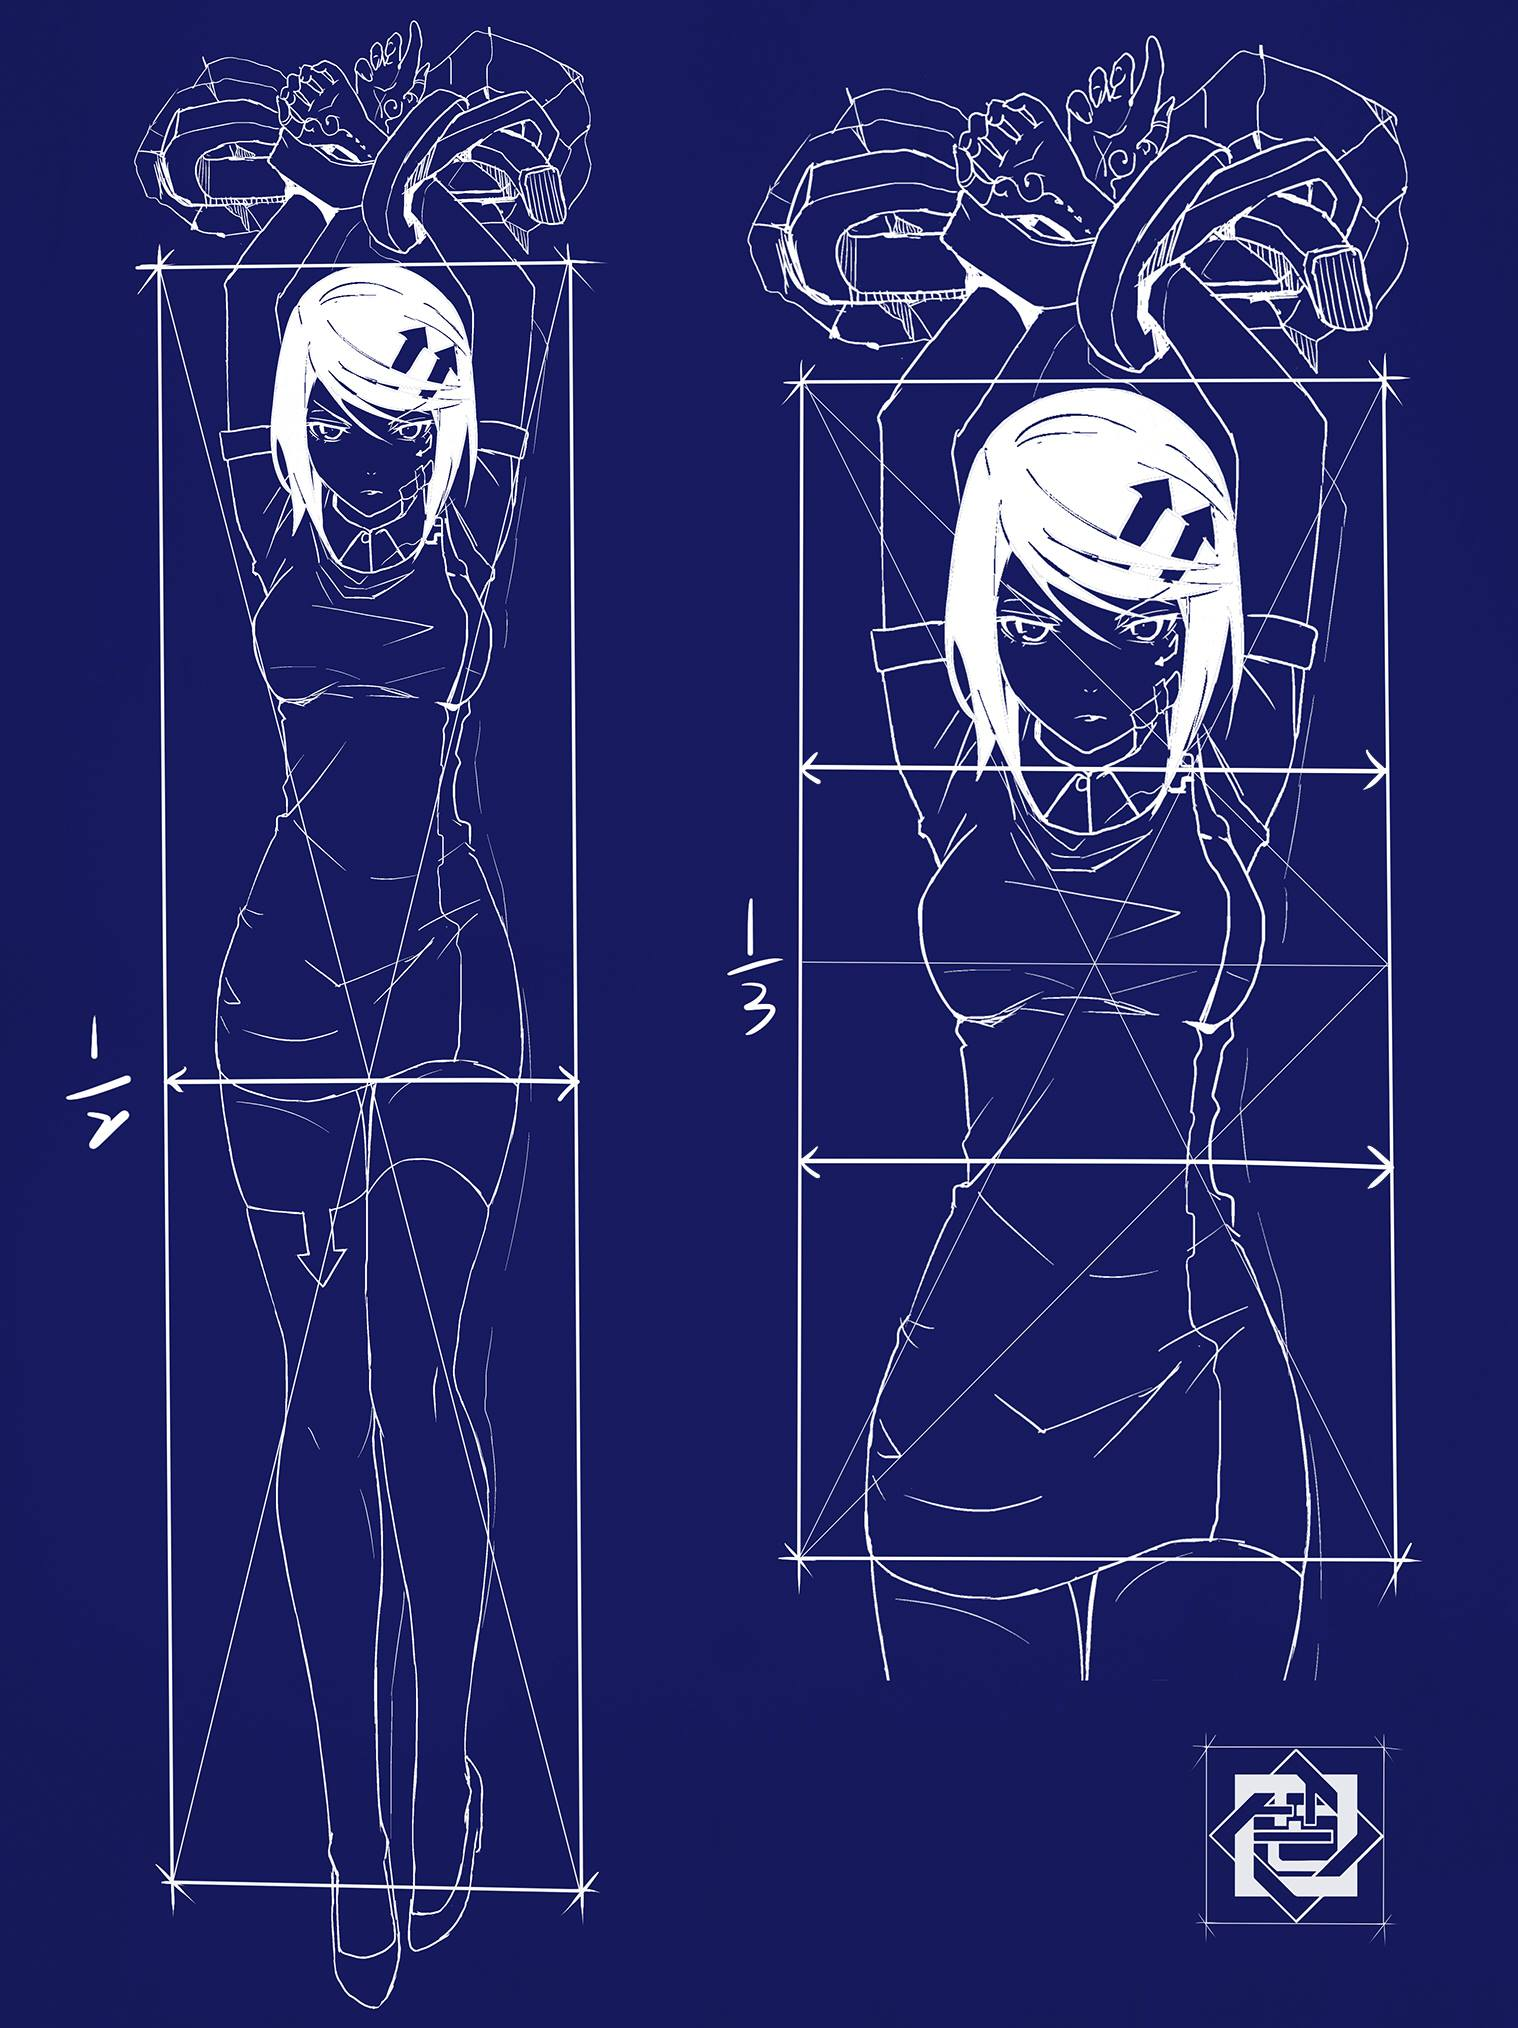 Blueprint by eat01234 on deviantart blueprint by eat01234 blueprint by eat01234 malvernweather Images